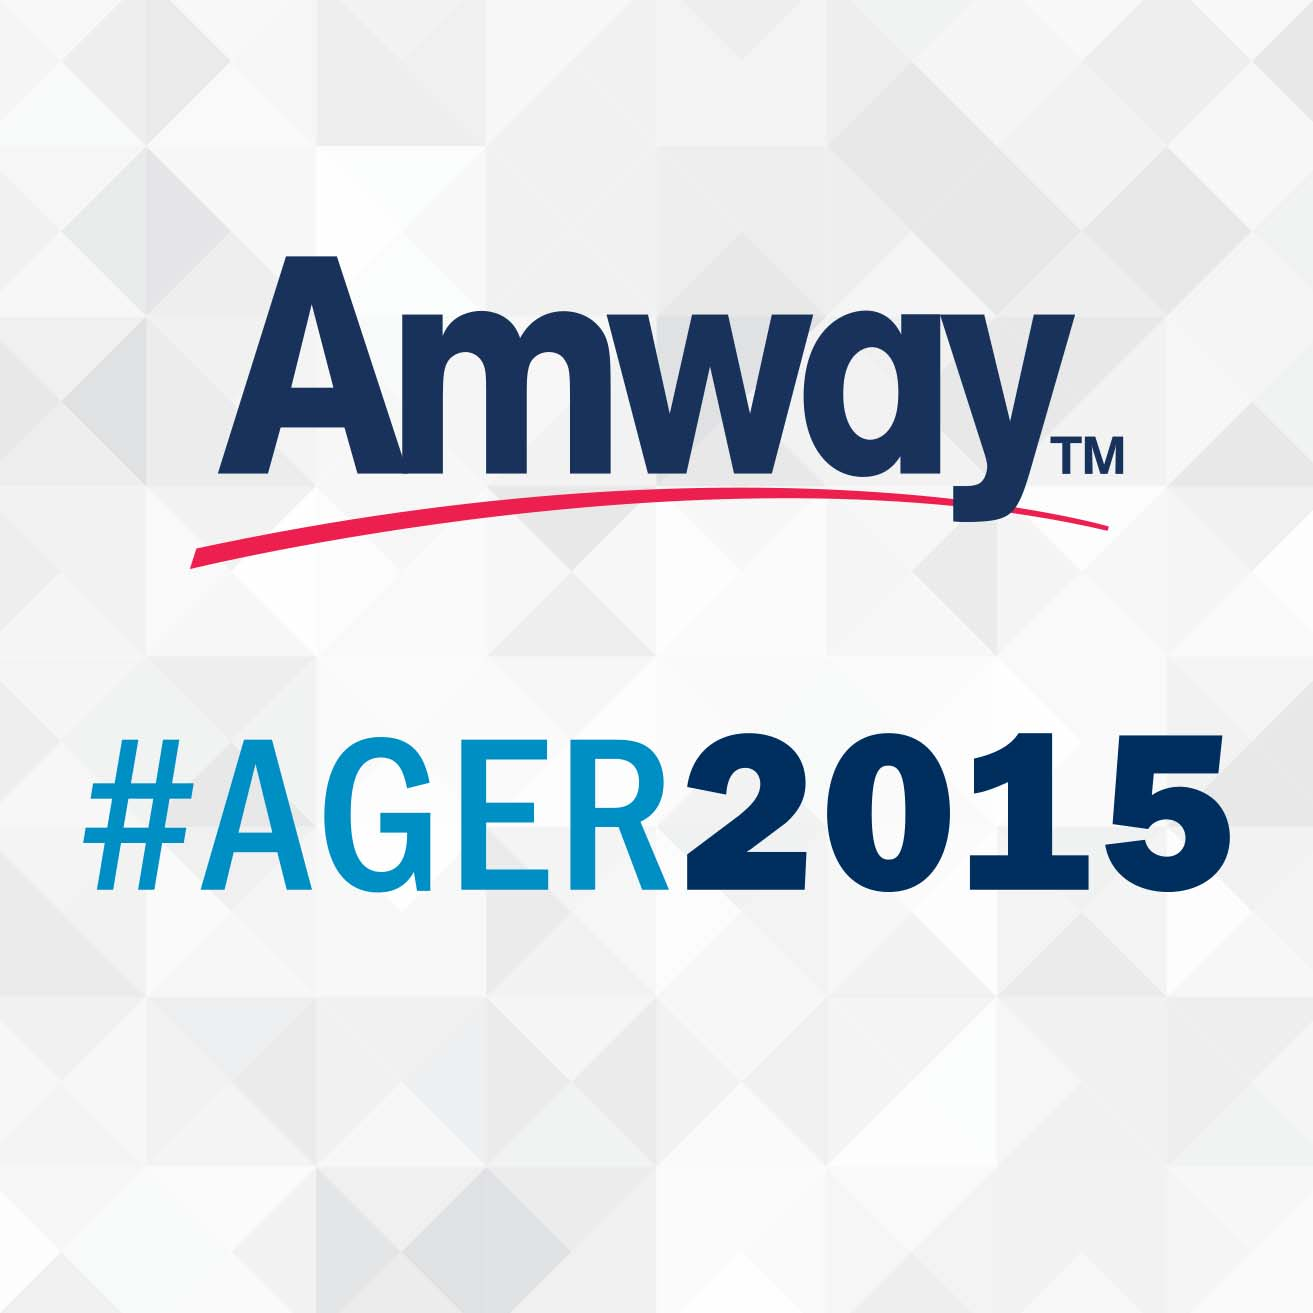 Join the conversation @AmwayUS